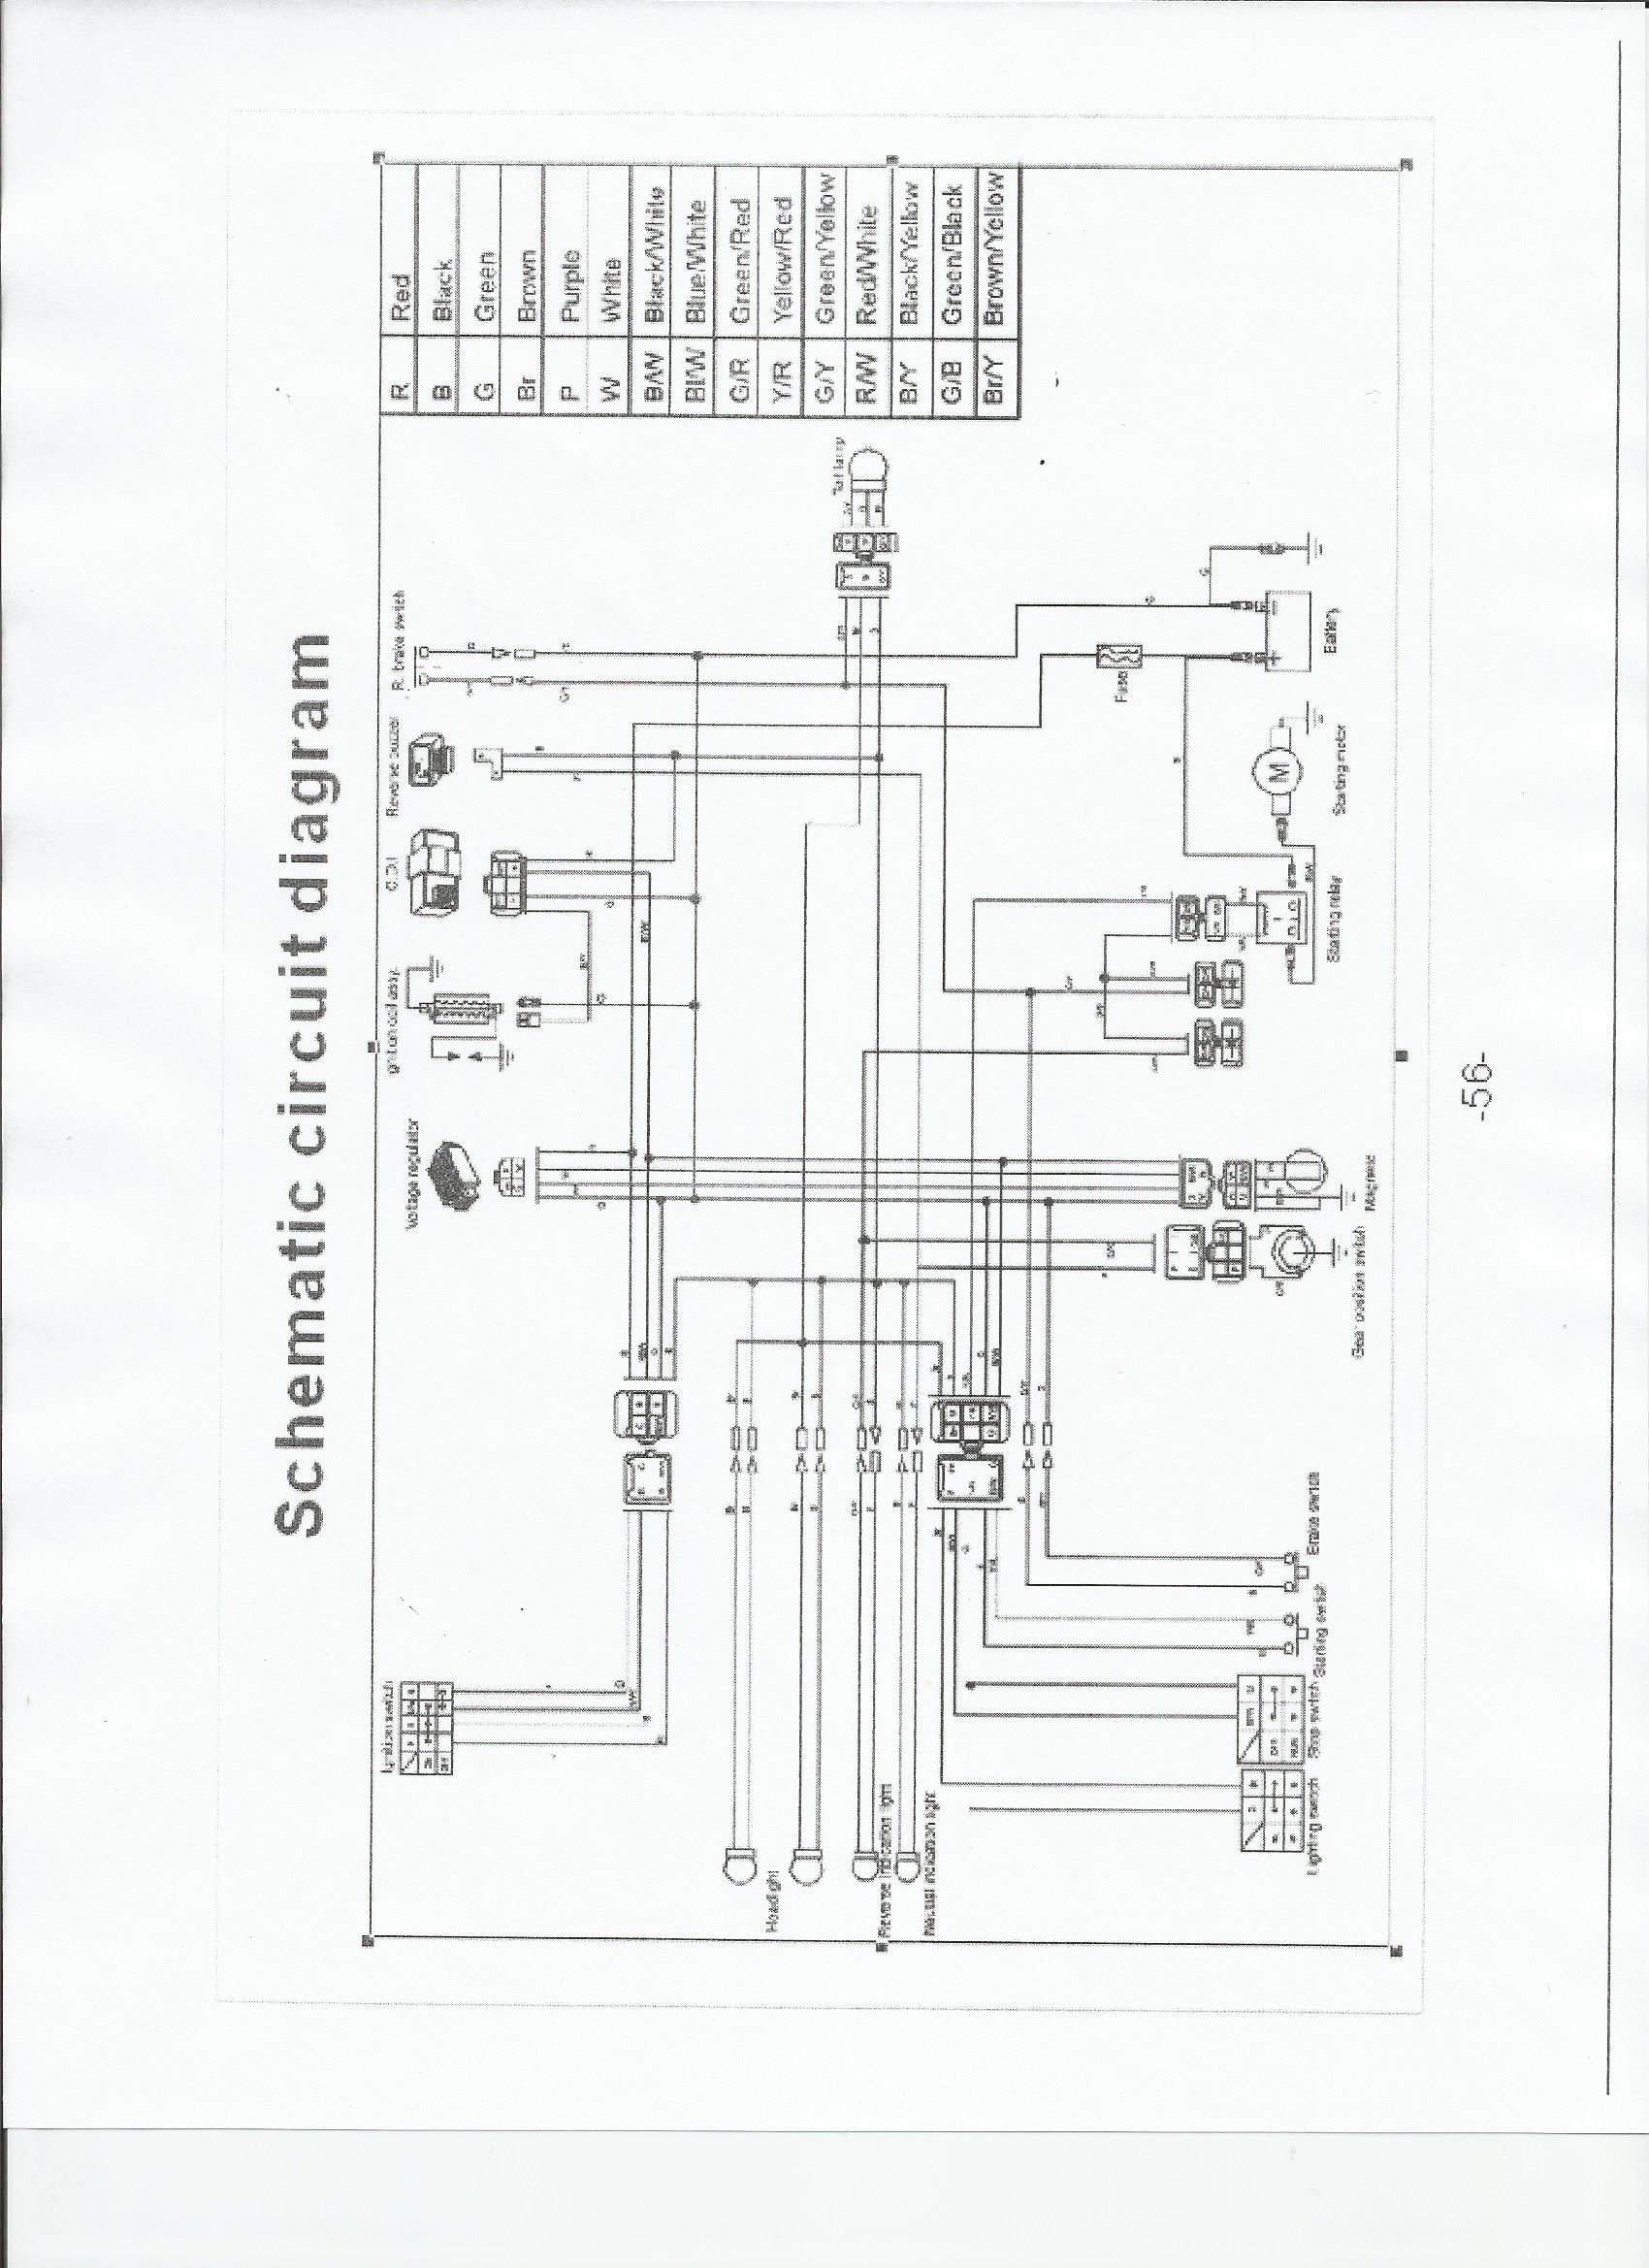 tao tao wiring schematic taotao mini and youth atv wiring schematic familygokarts support chinese 4 wheeler wiring diagram at virtualis.co